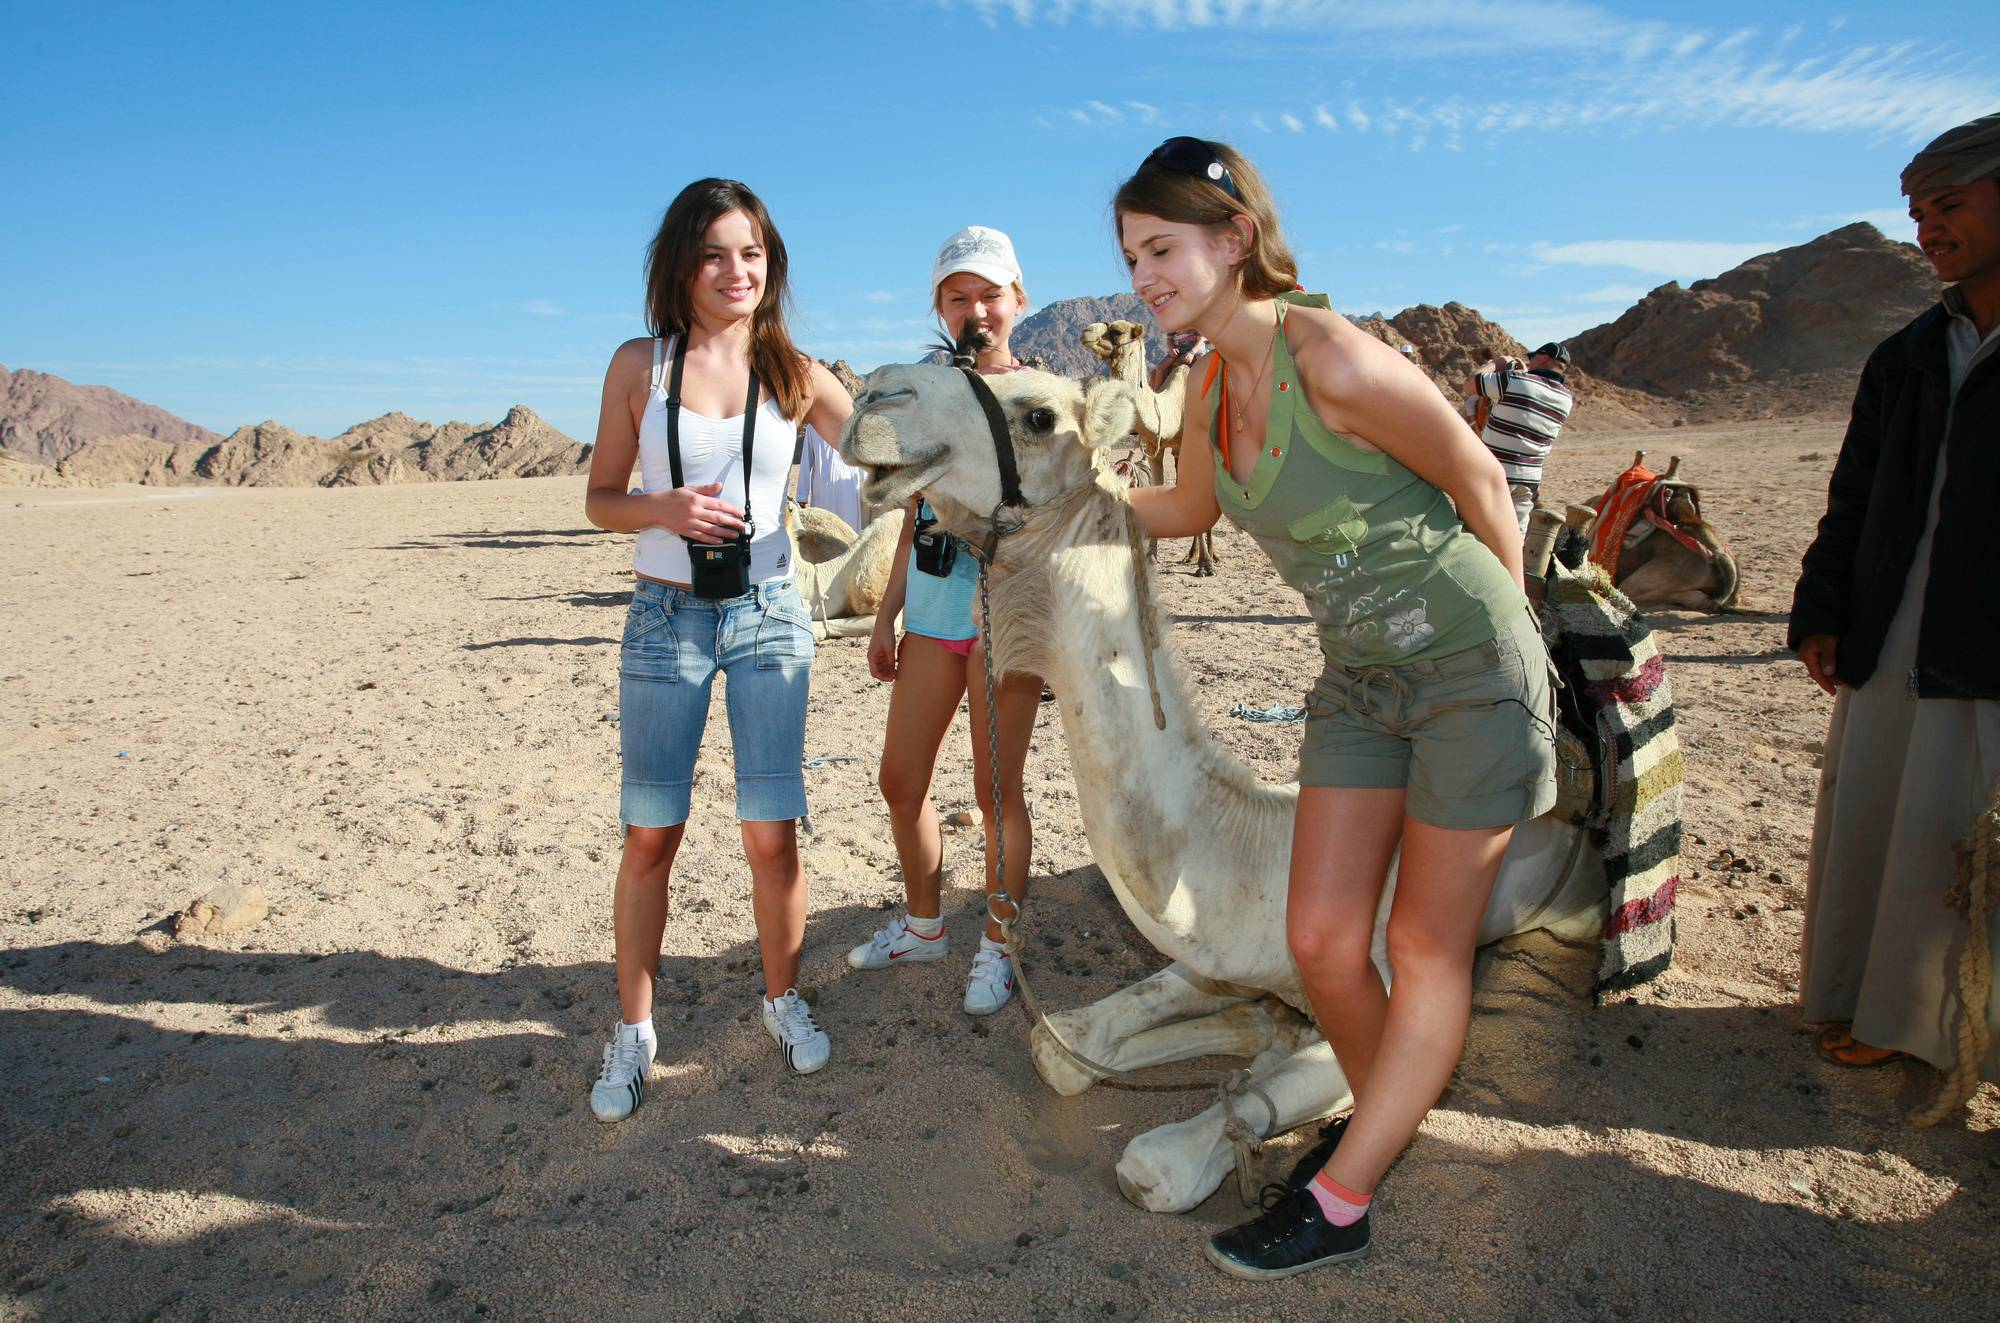 Pure Nudism Pics Egyptian Camel Day Tour - 3